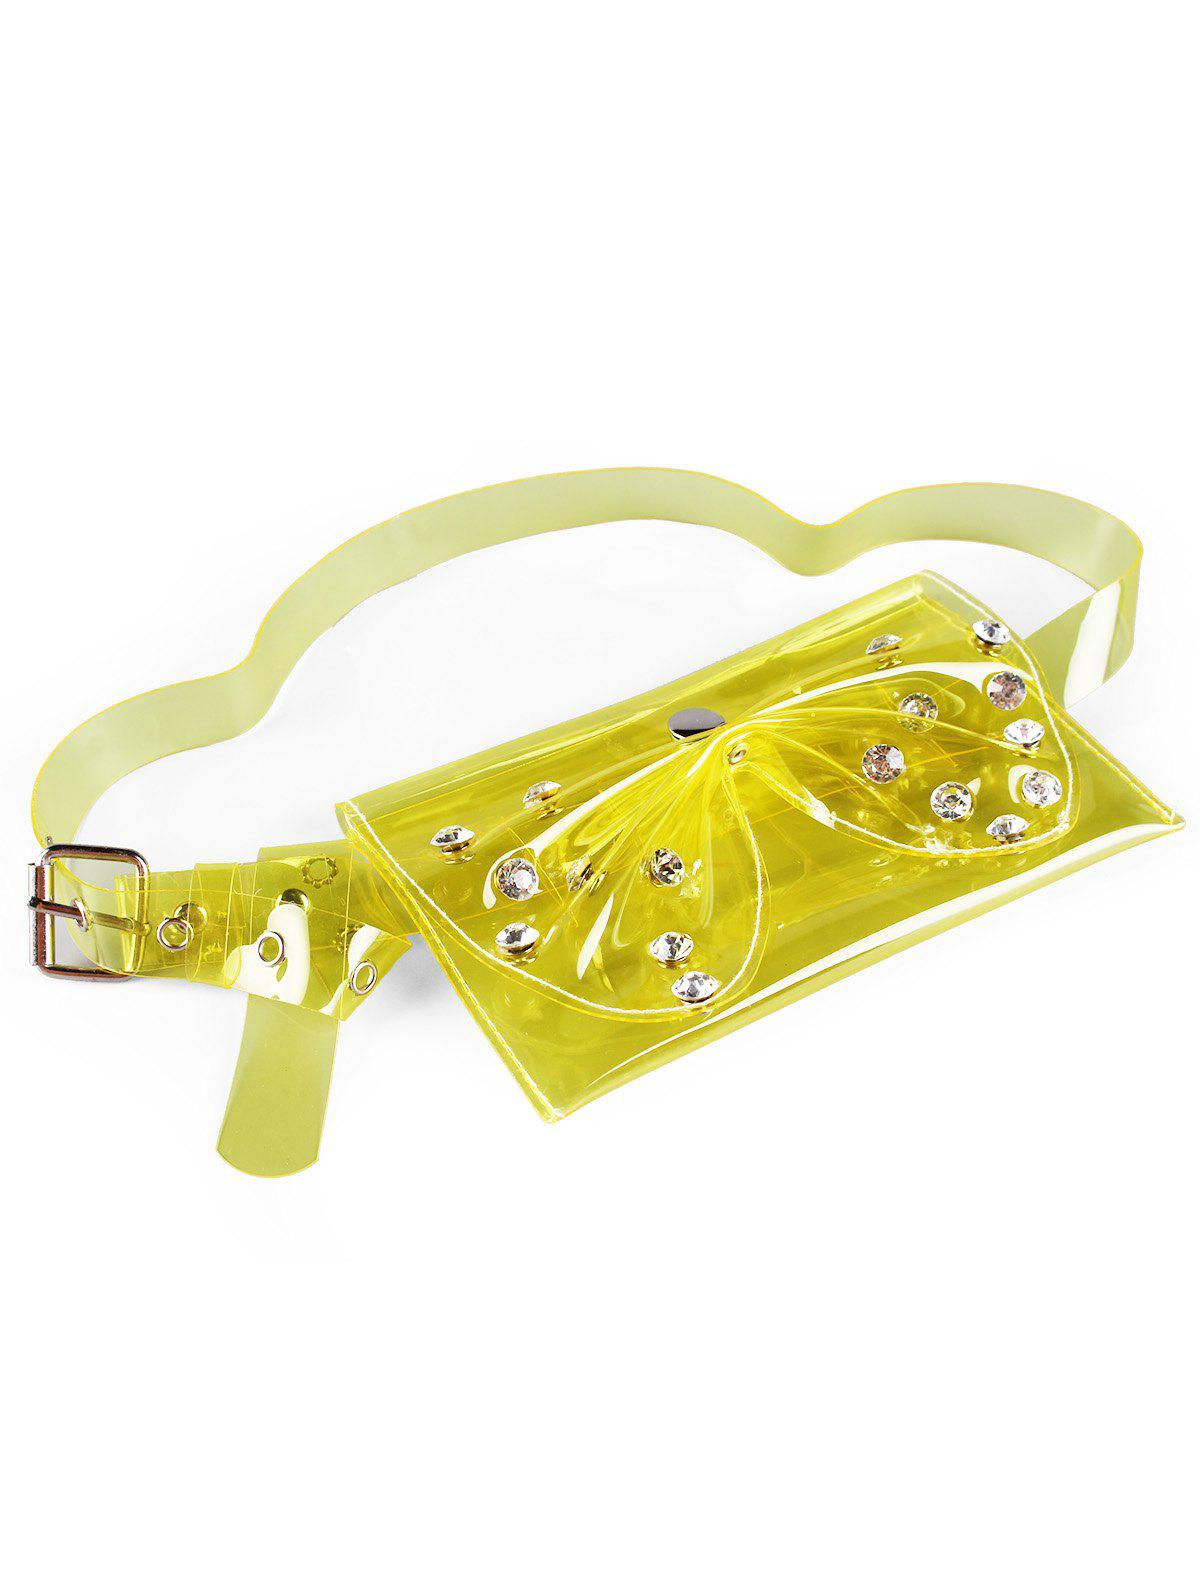 Buy Vintage Rhinestone Bowknot Jelly Color Fanny Pack Belt Bag